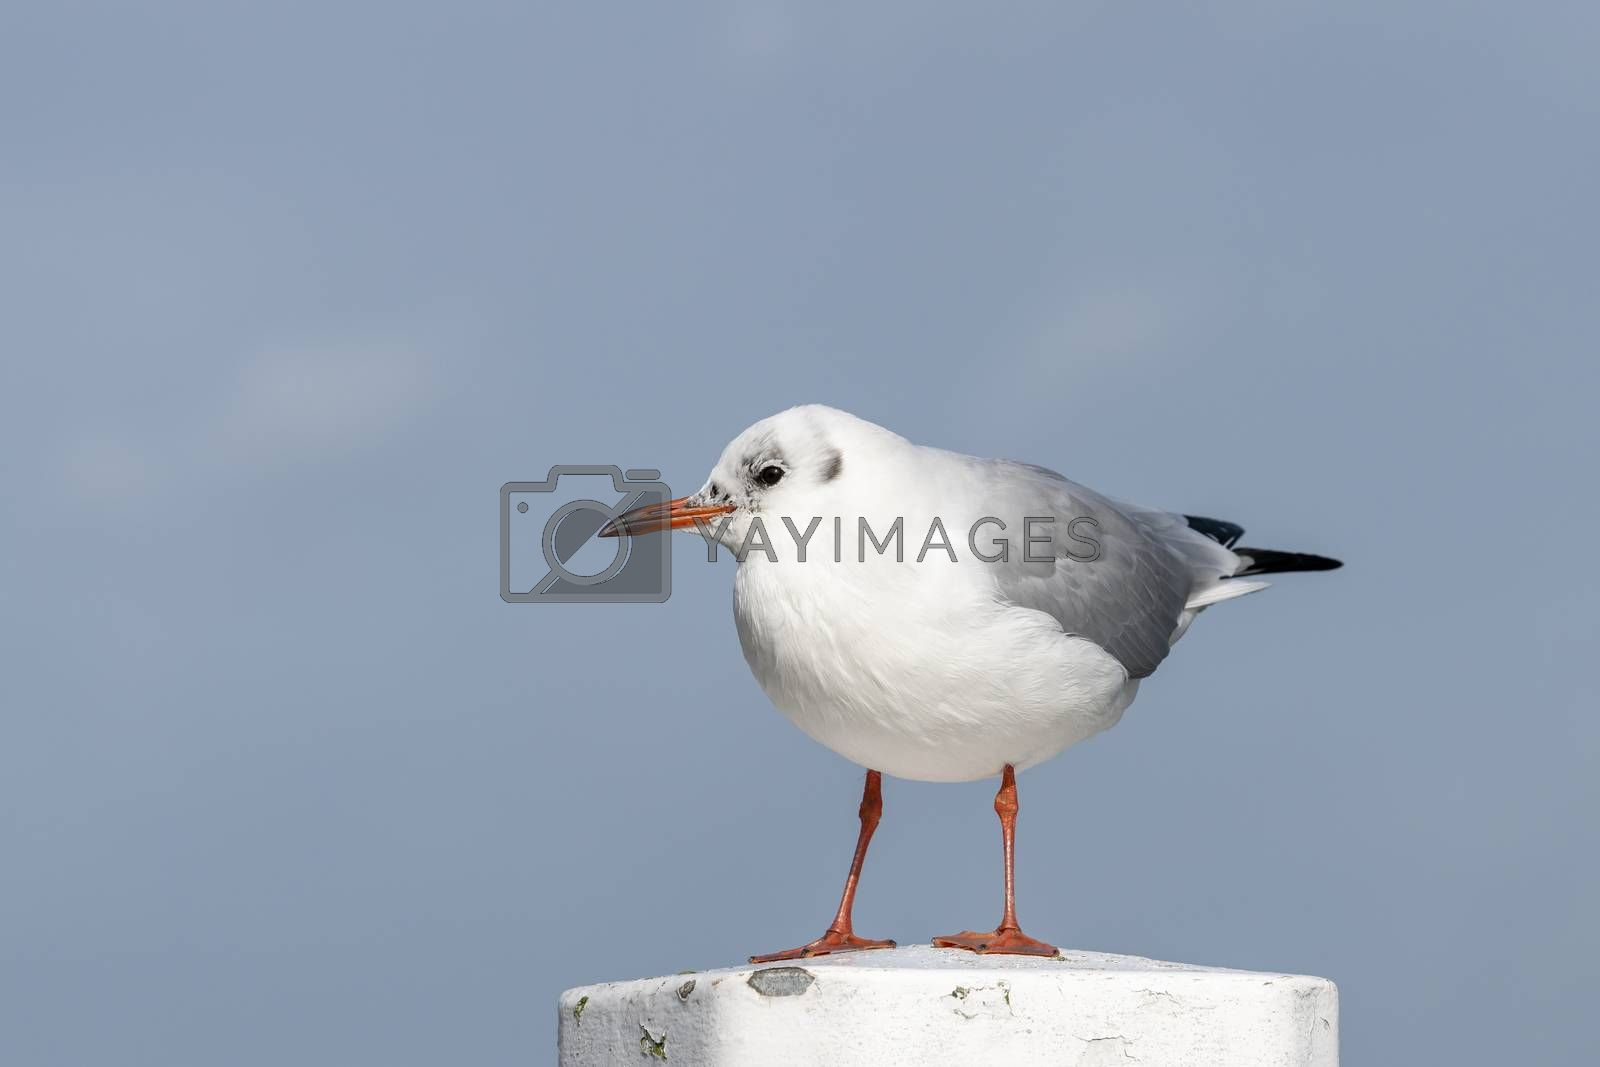 Black-headed gull on a mooring in the harbor   by Tofotografie